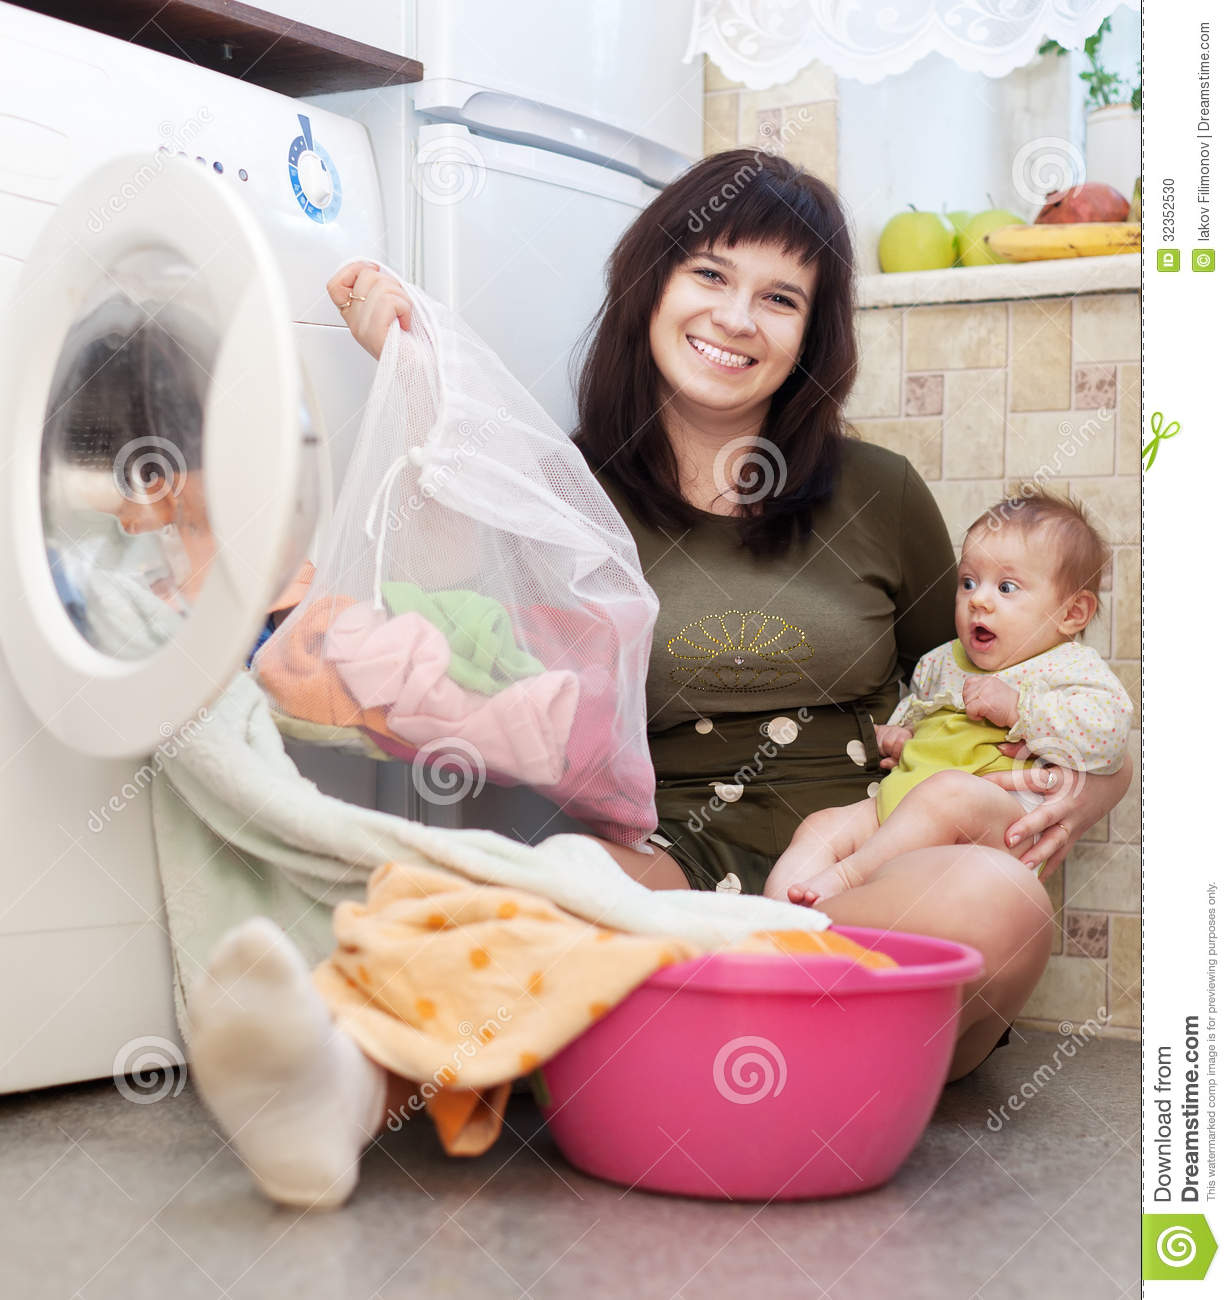 Woman With Baby Putting Clothes Into Washing Machine Stock Photo